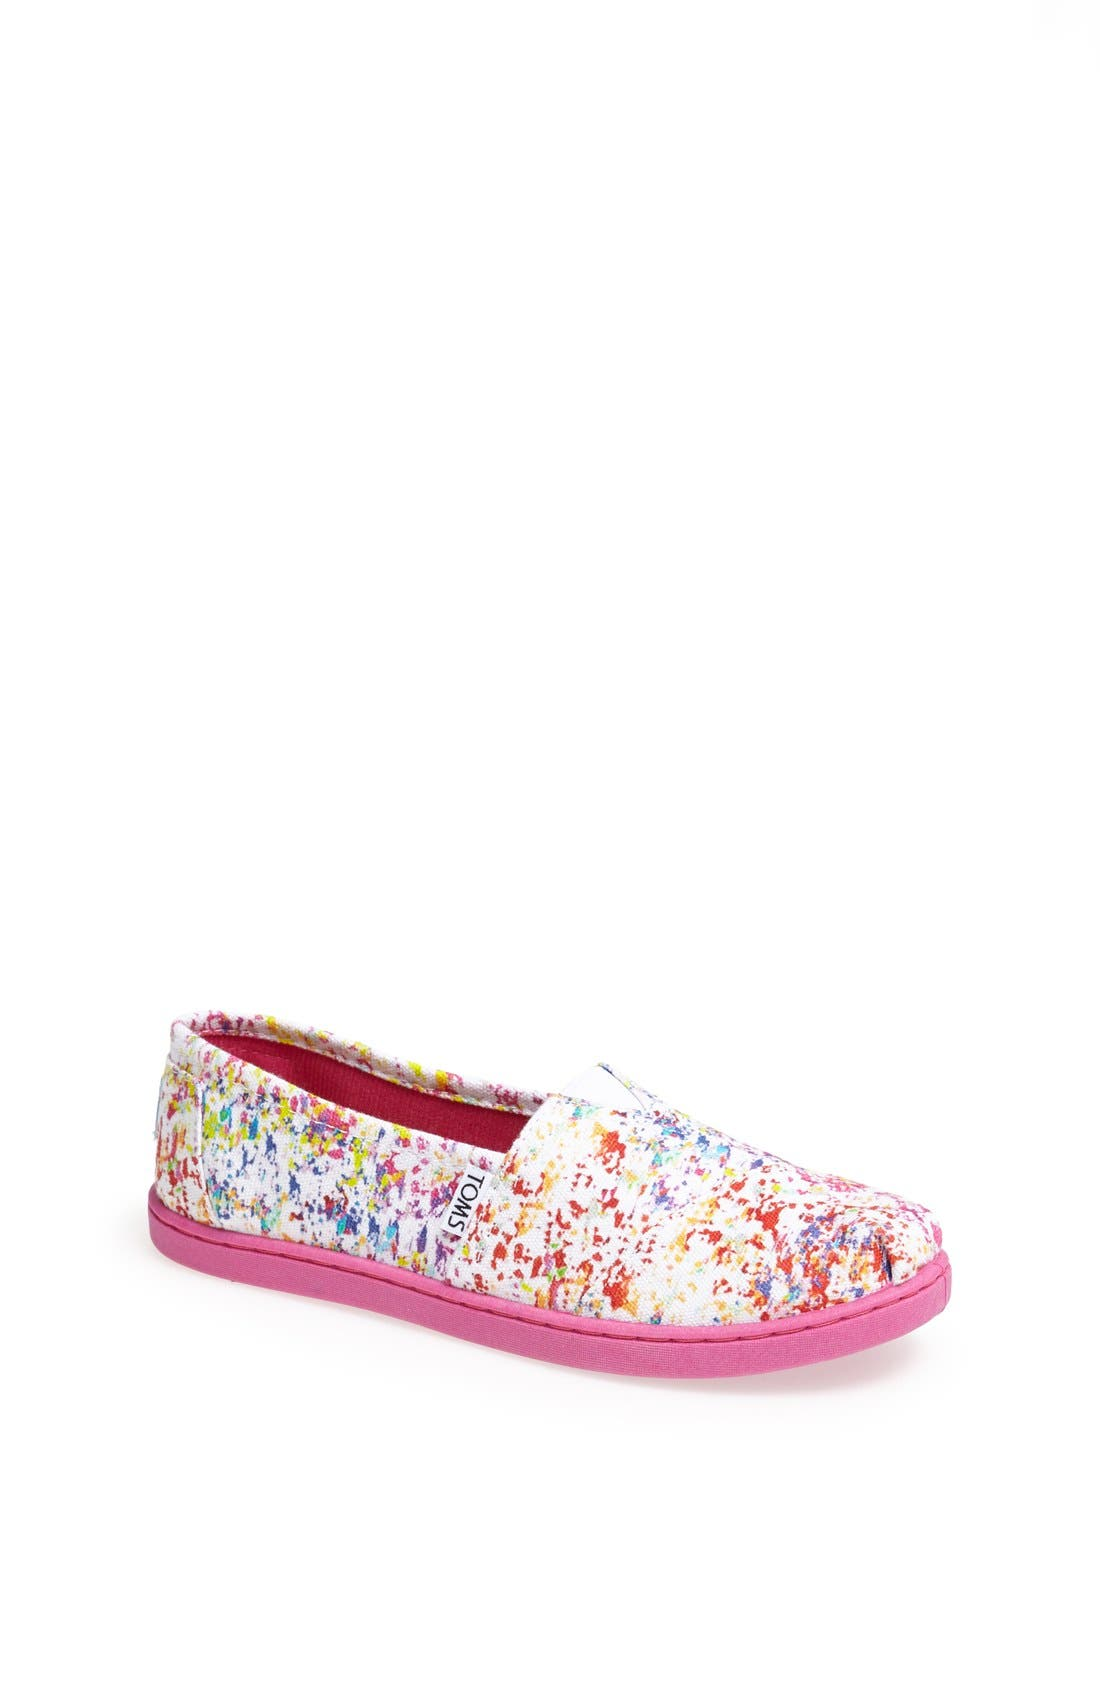 Alternate Image 1 Selected - TOMS CLASSIC YOUTH SLIP ON